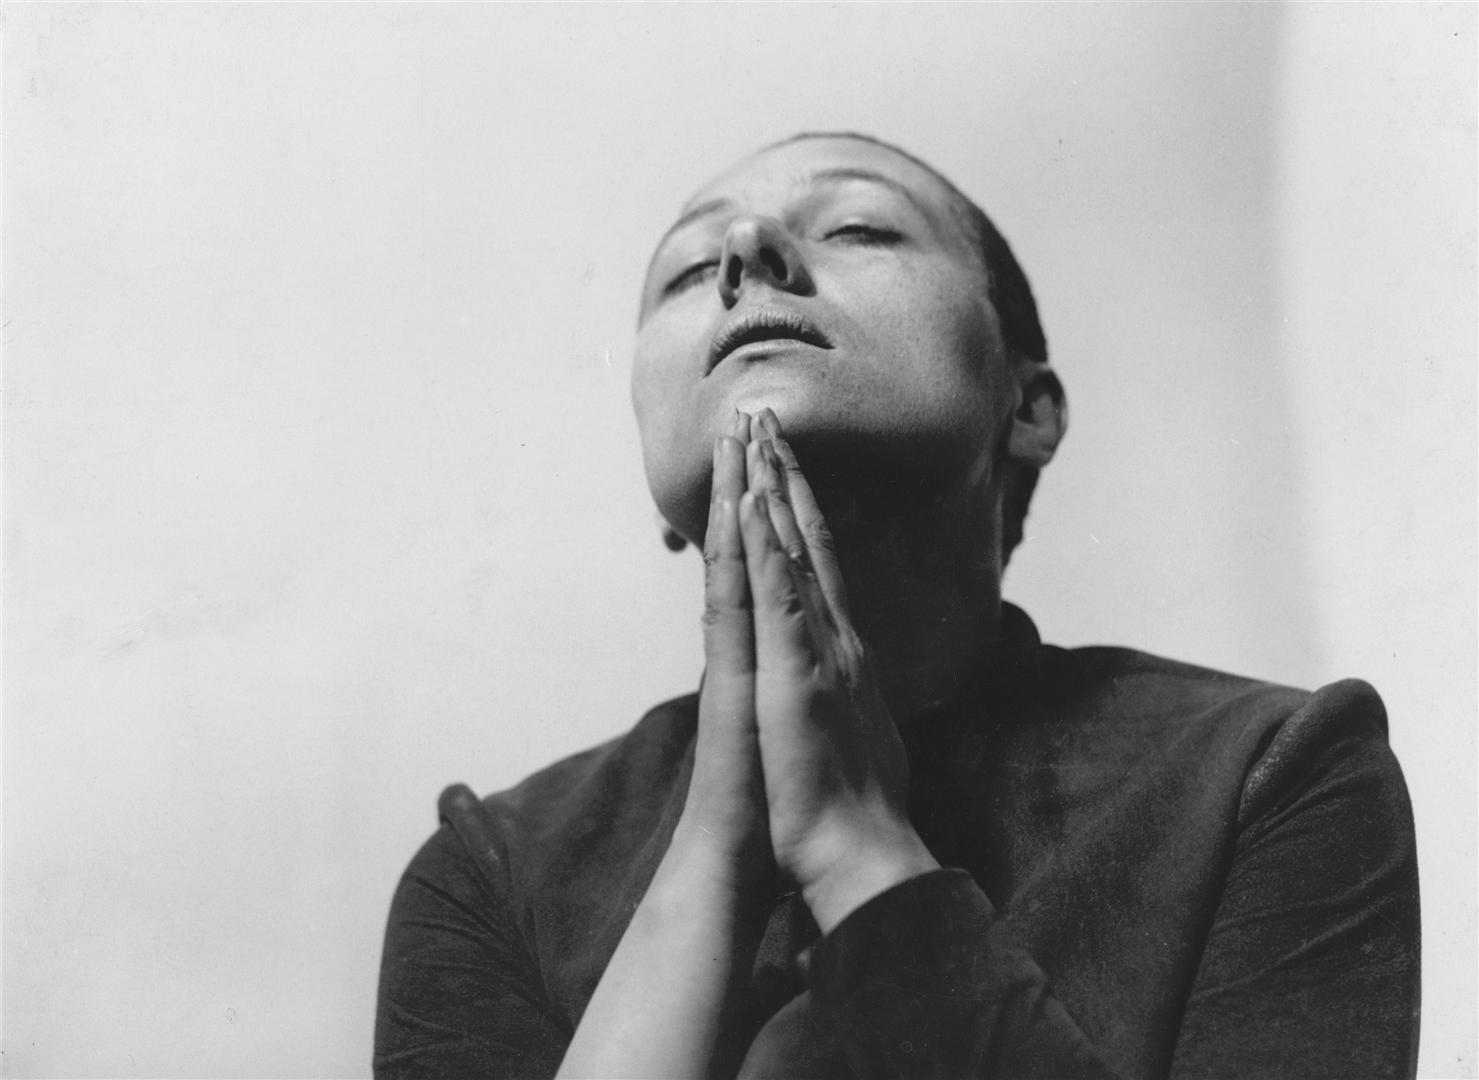 THE PASSION OF JOAN OF ARC_MoC_Press Still 1 (Large)